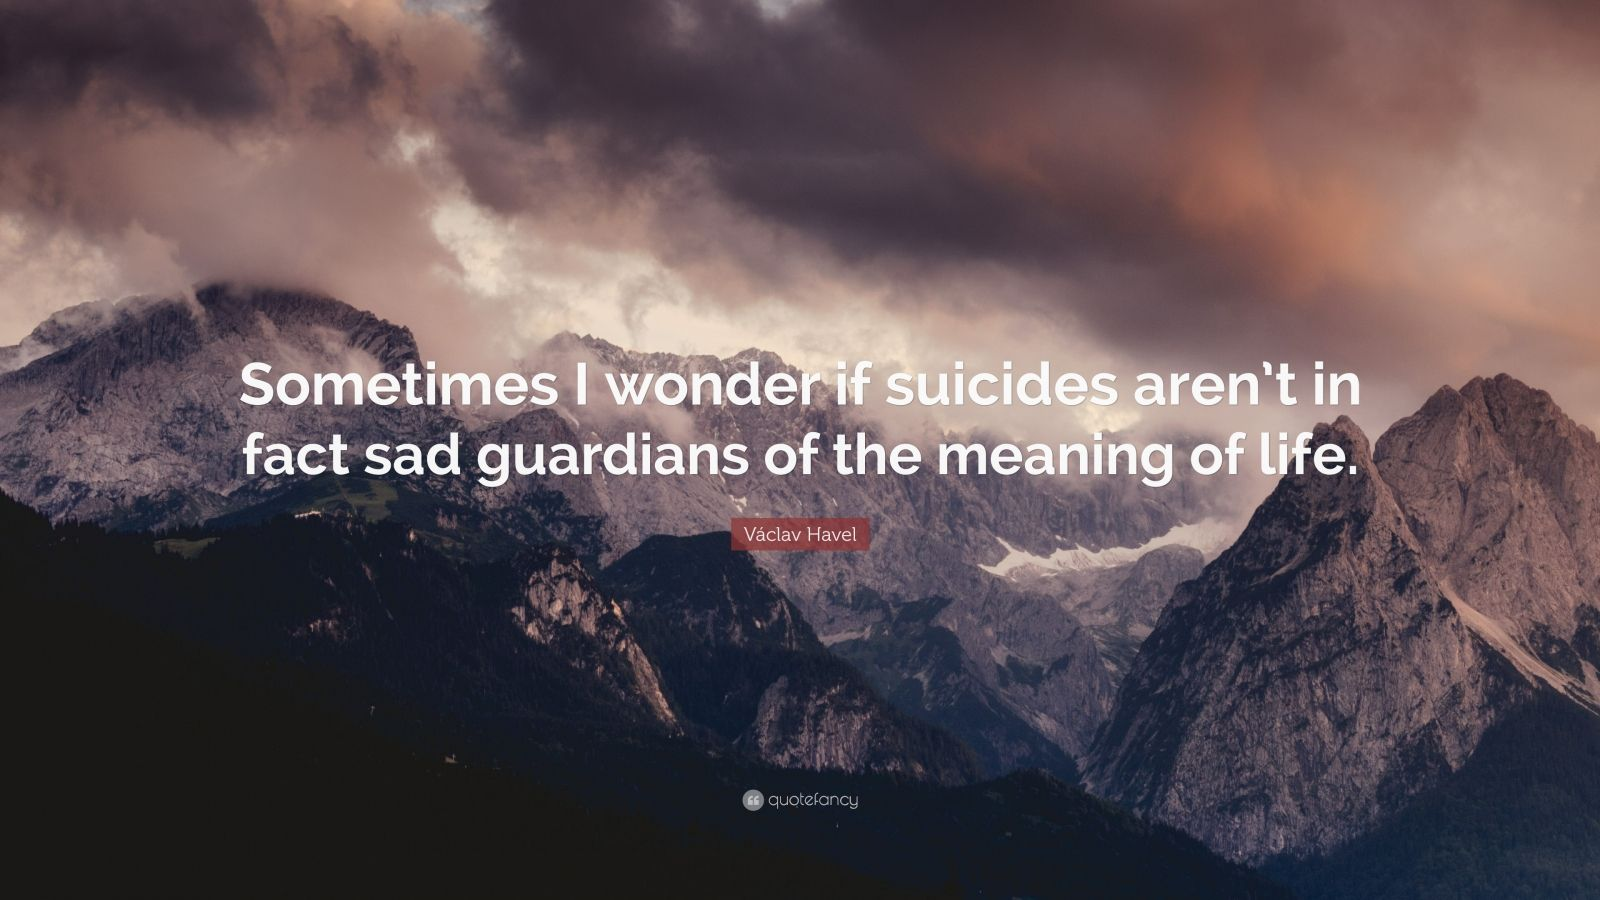 """Václav Havel Quote: """"Sometimes I wonder if suicides aren't in fact sad guardians of the meaning of life."""""""